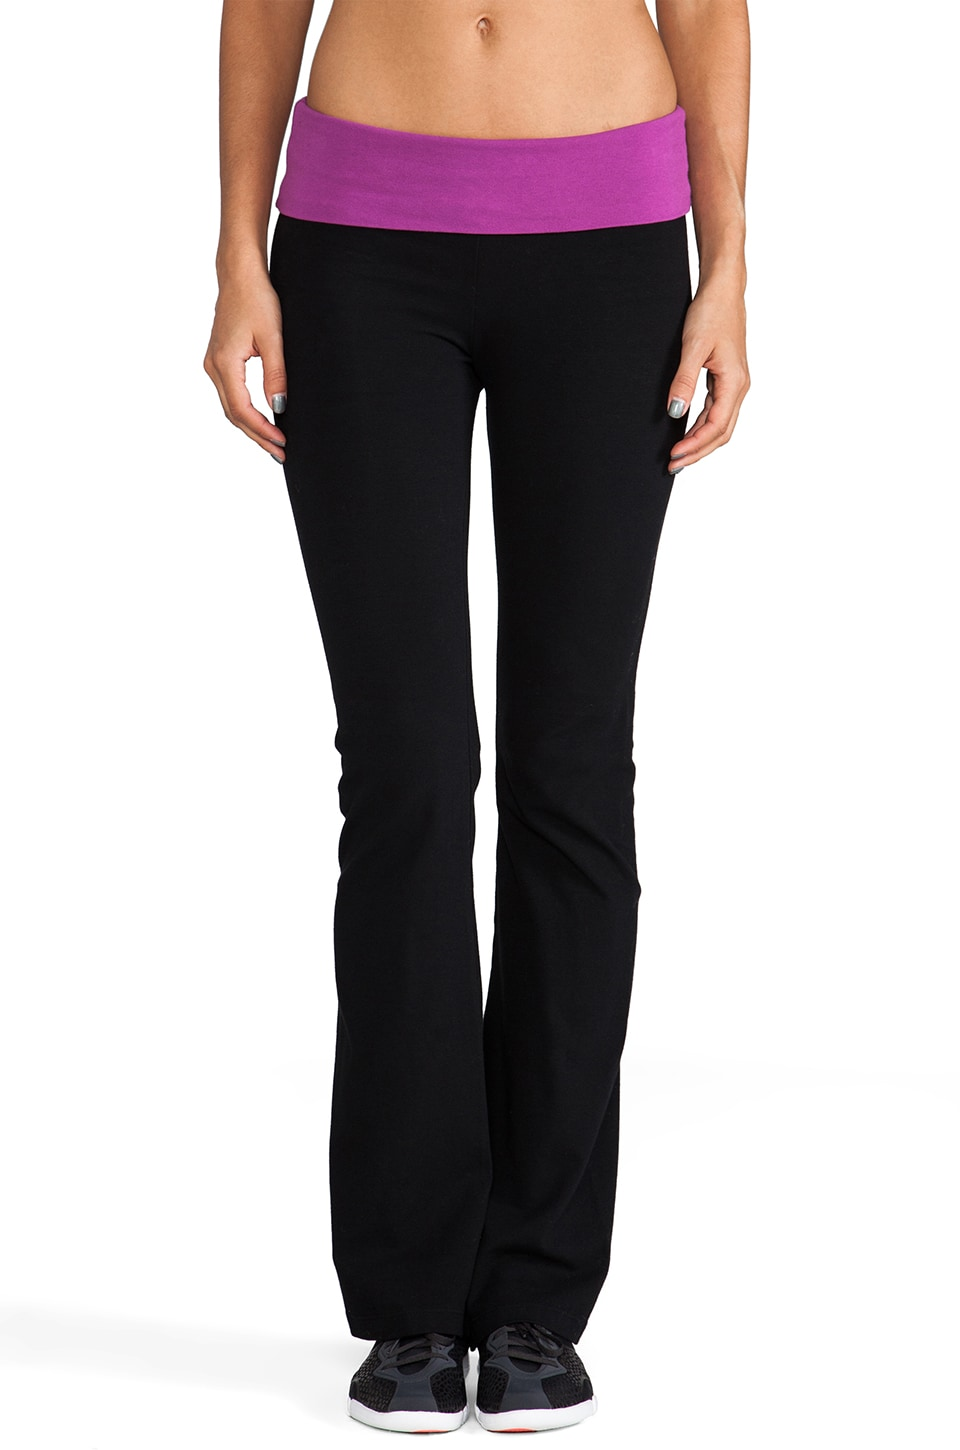 SOLOW Fold Over Boot Cut Pant in Black/Flora